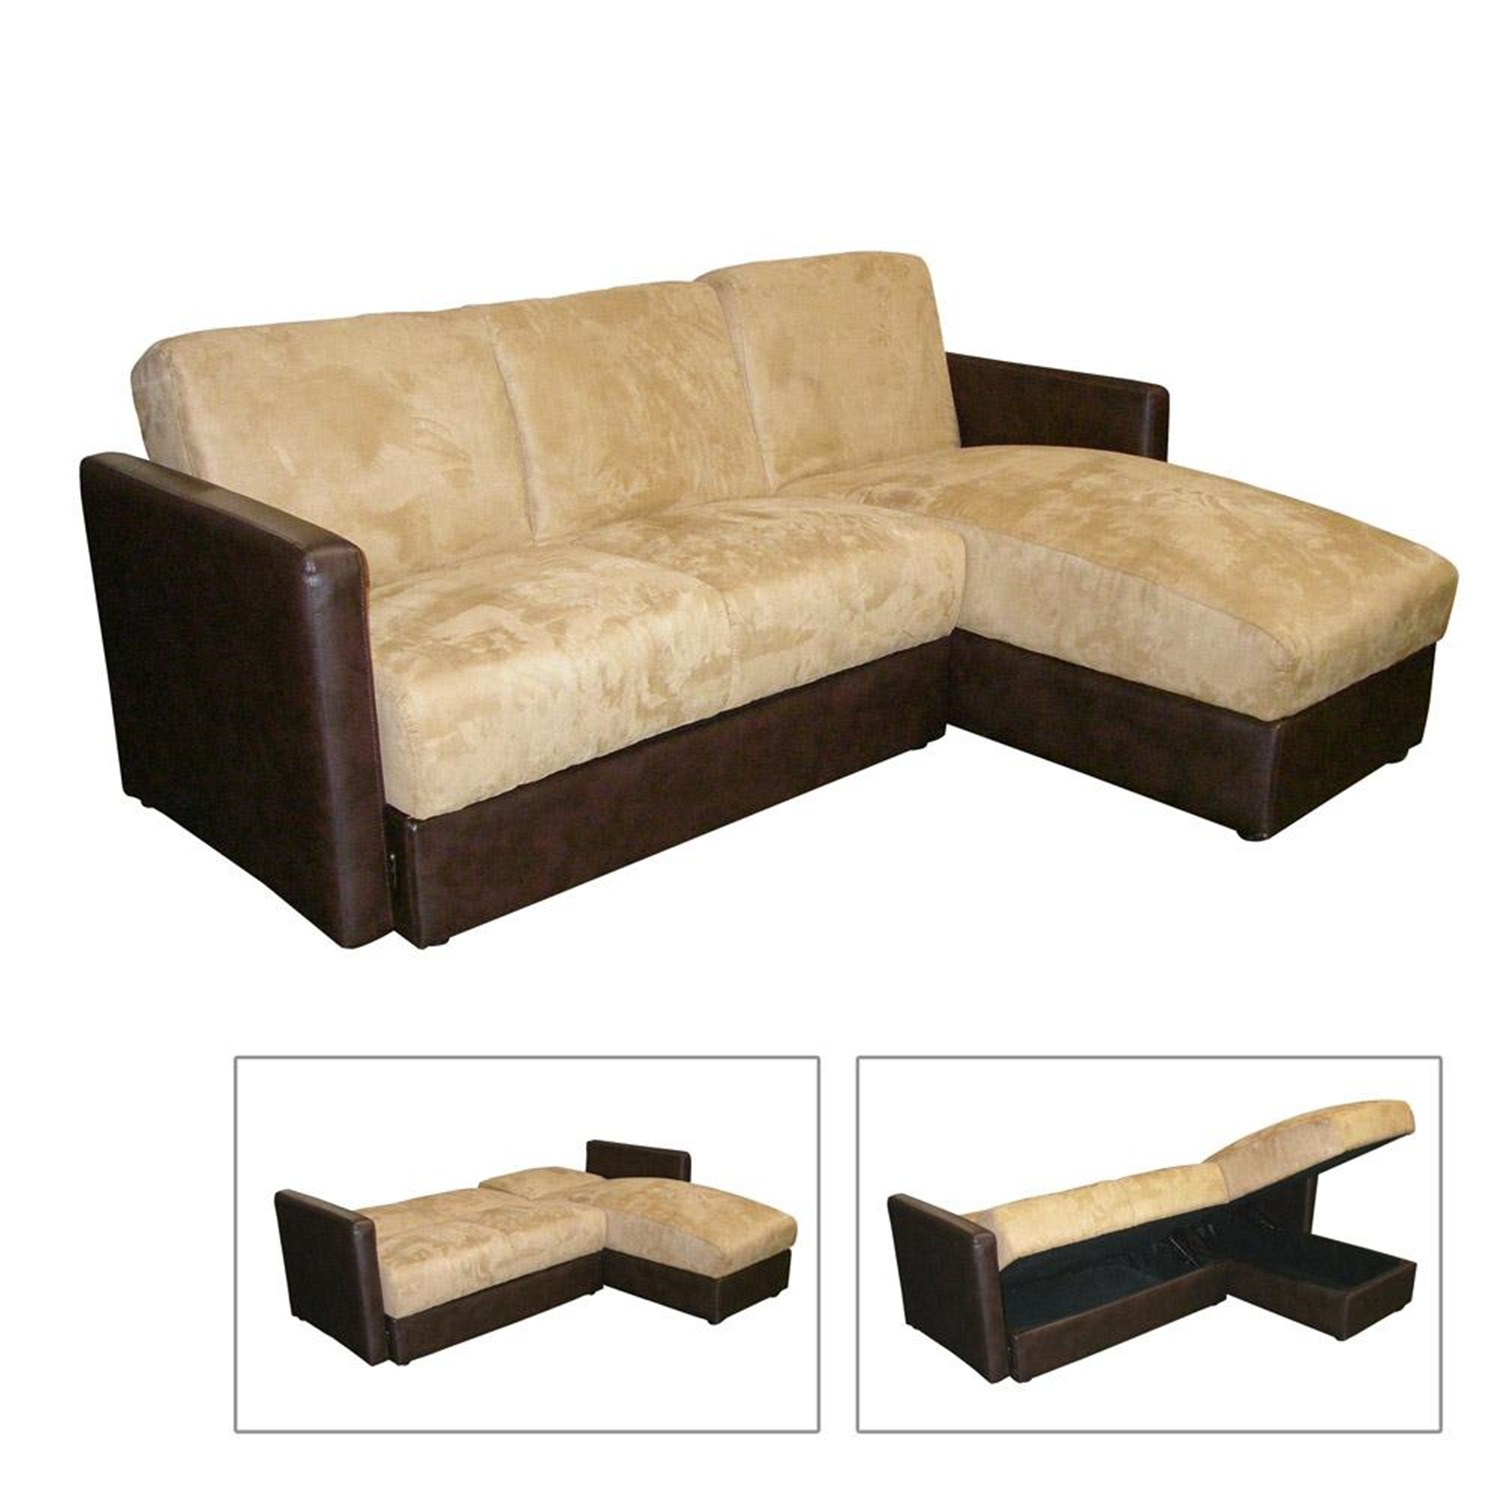 Loveseat Sofa Beds With Storage